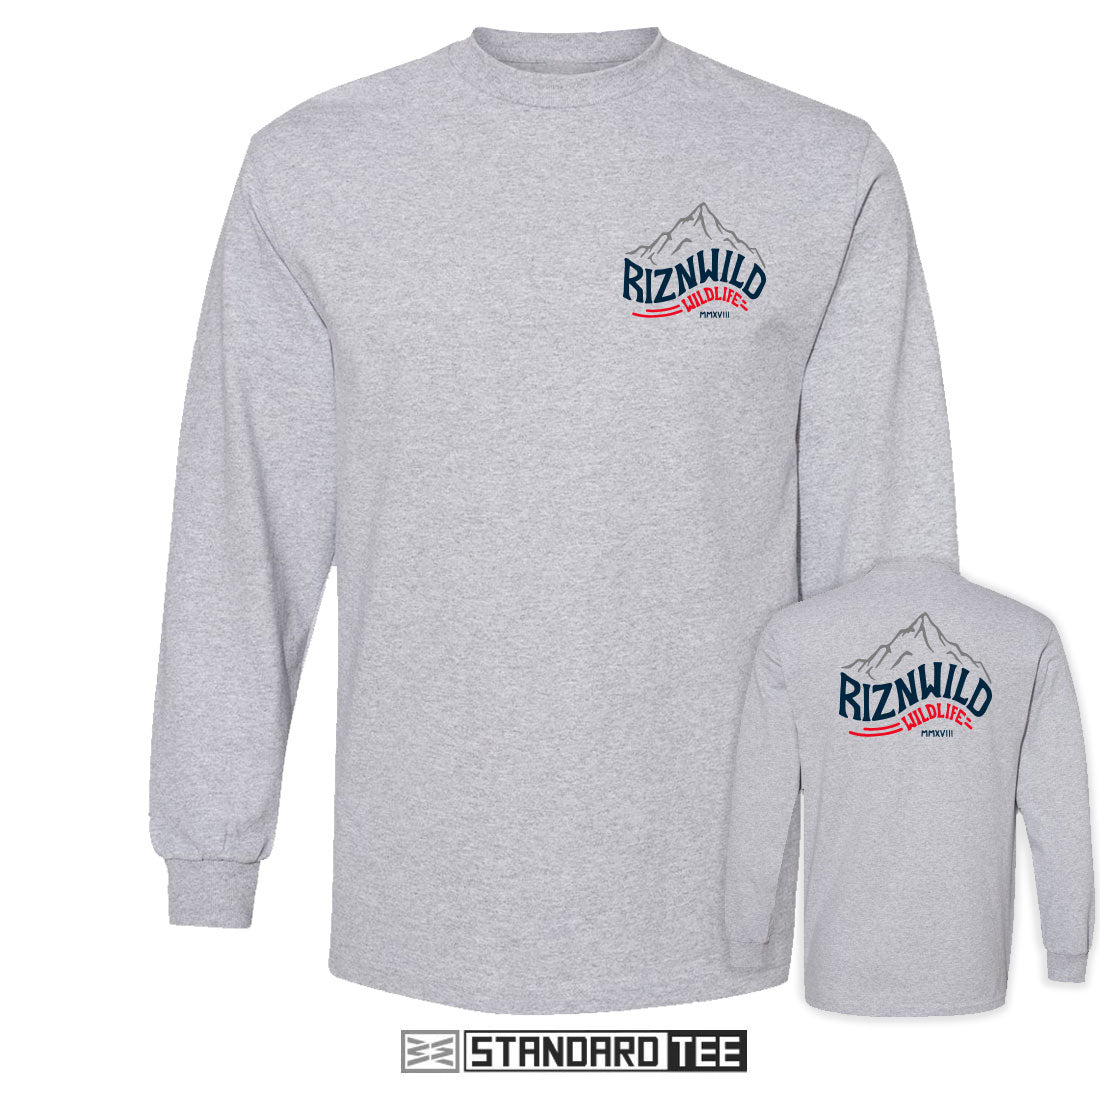 ROCKIES MENS LONG SLEEVE STANDARD TEE IN ATHLETIC HEATHER